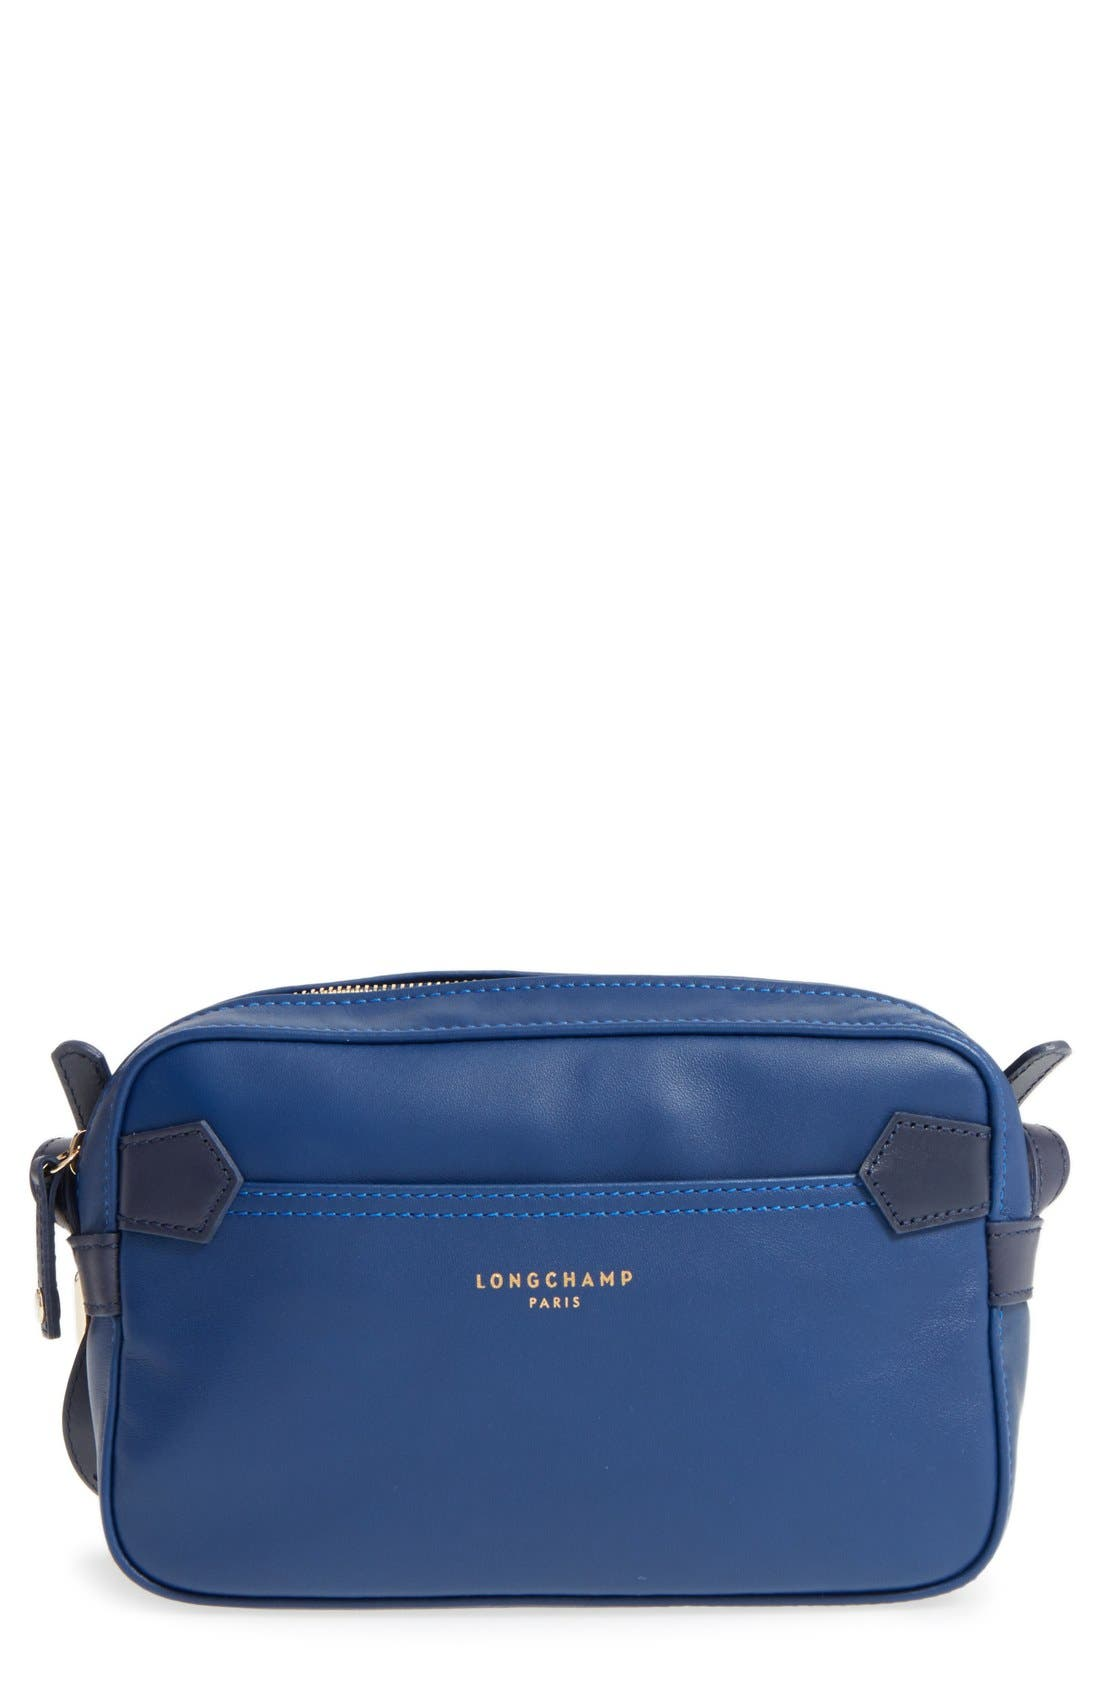 '2.0' Two-Tone Leather Crossbody Bag,                             Main thumbnail 1, color,                             Blue/ Navy